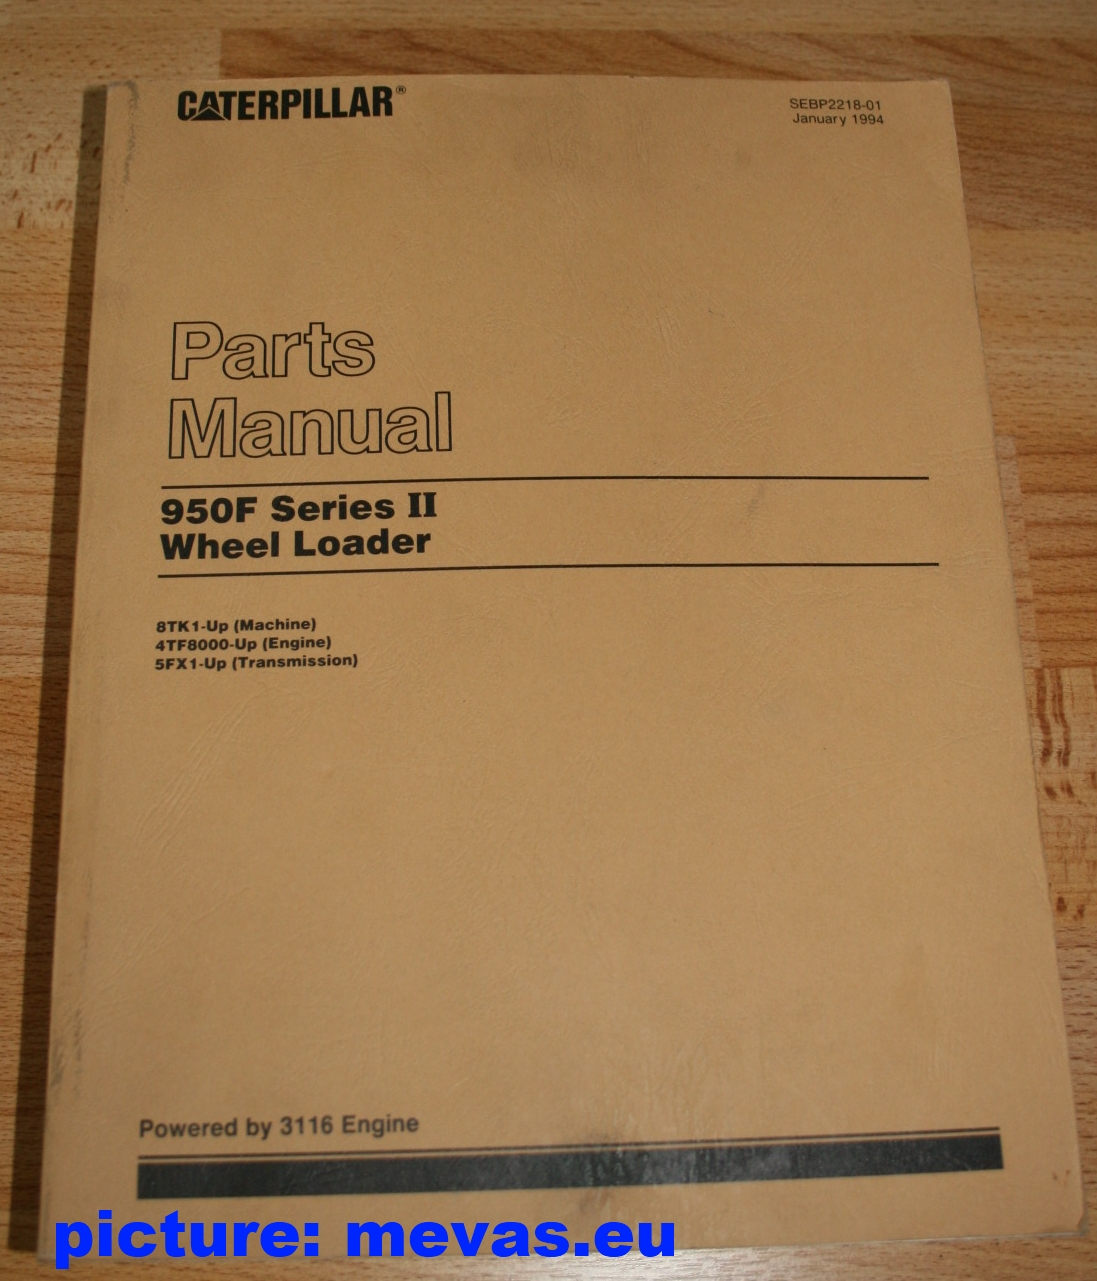 caterpillar 950f series ii wheel loader parts manual for sale